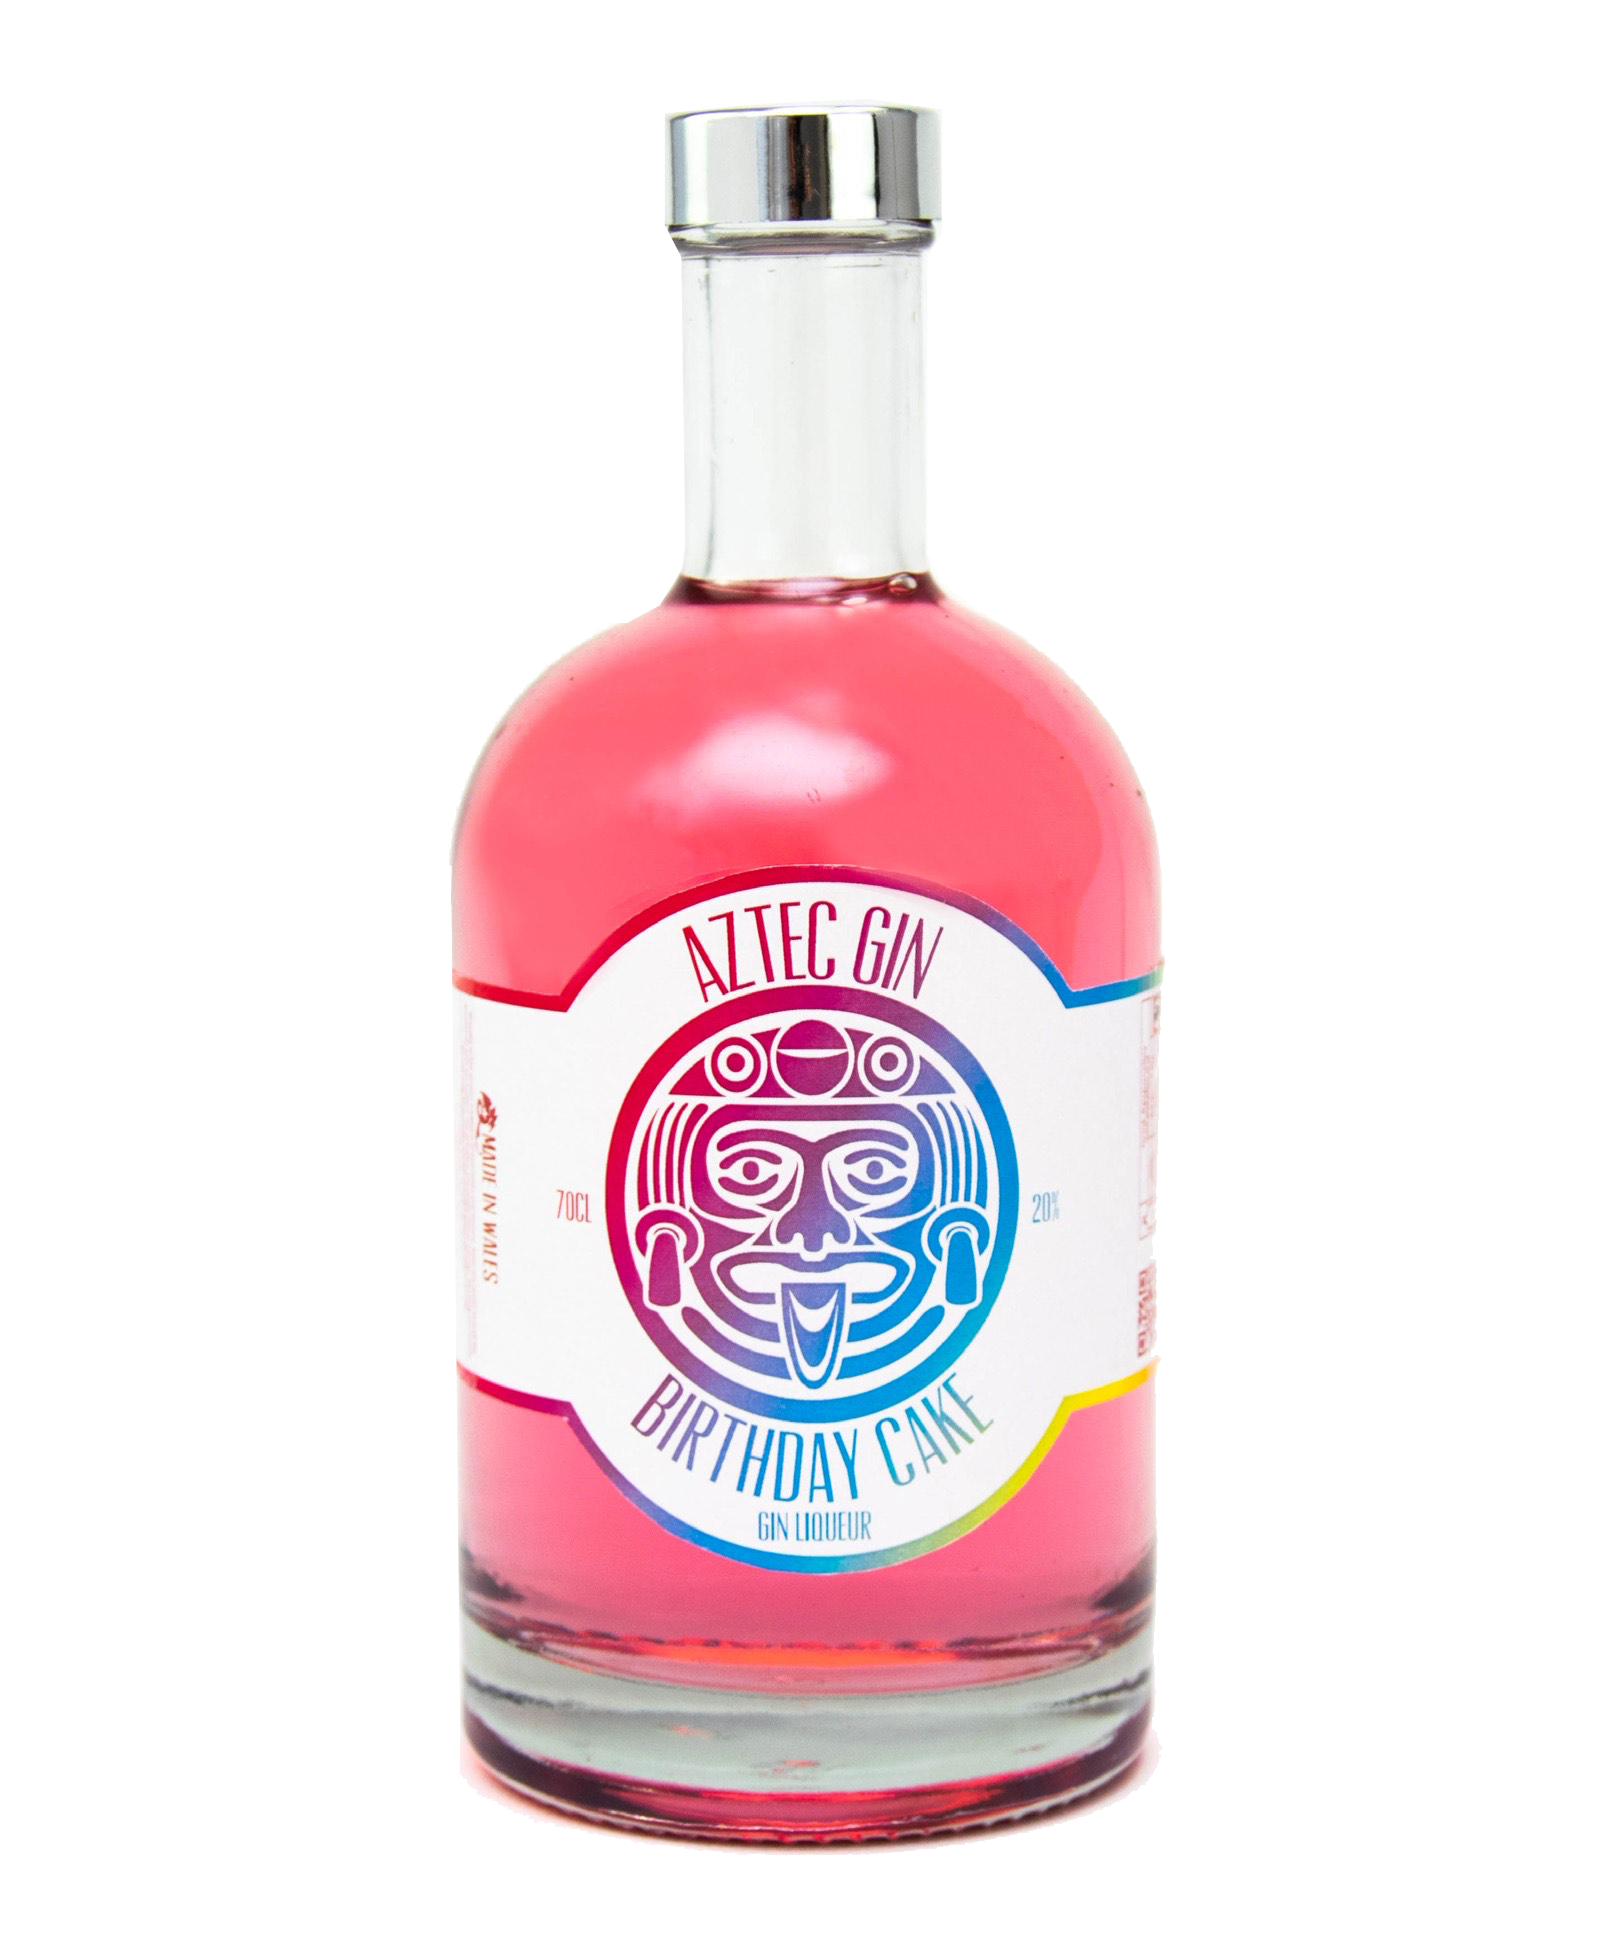 Fabulous Cherry Bakewell Gin Aztec Gin Liqueur Funny Birthday Cards Online Inifofree Goldxyz